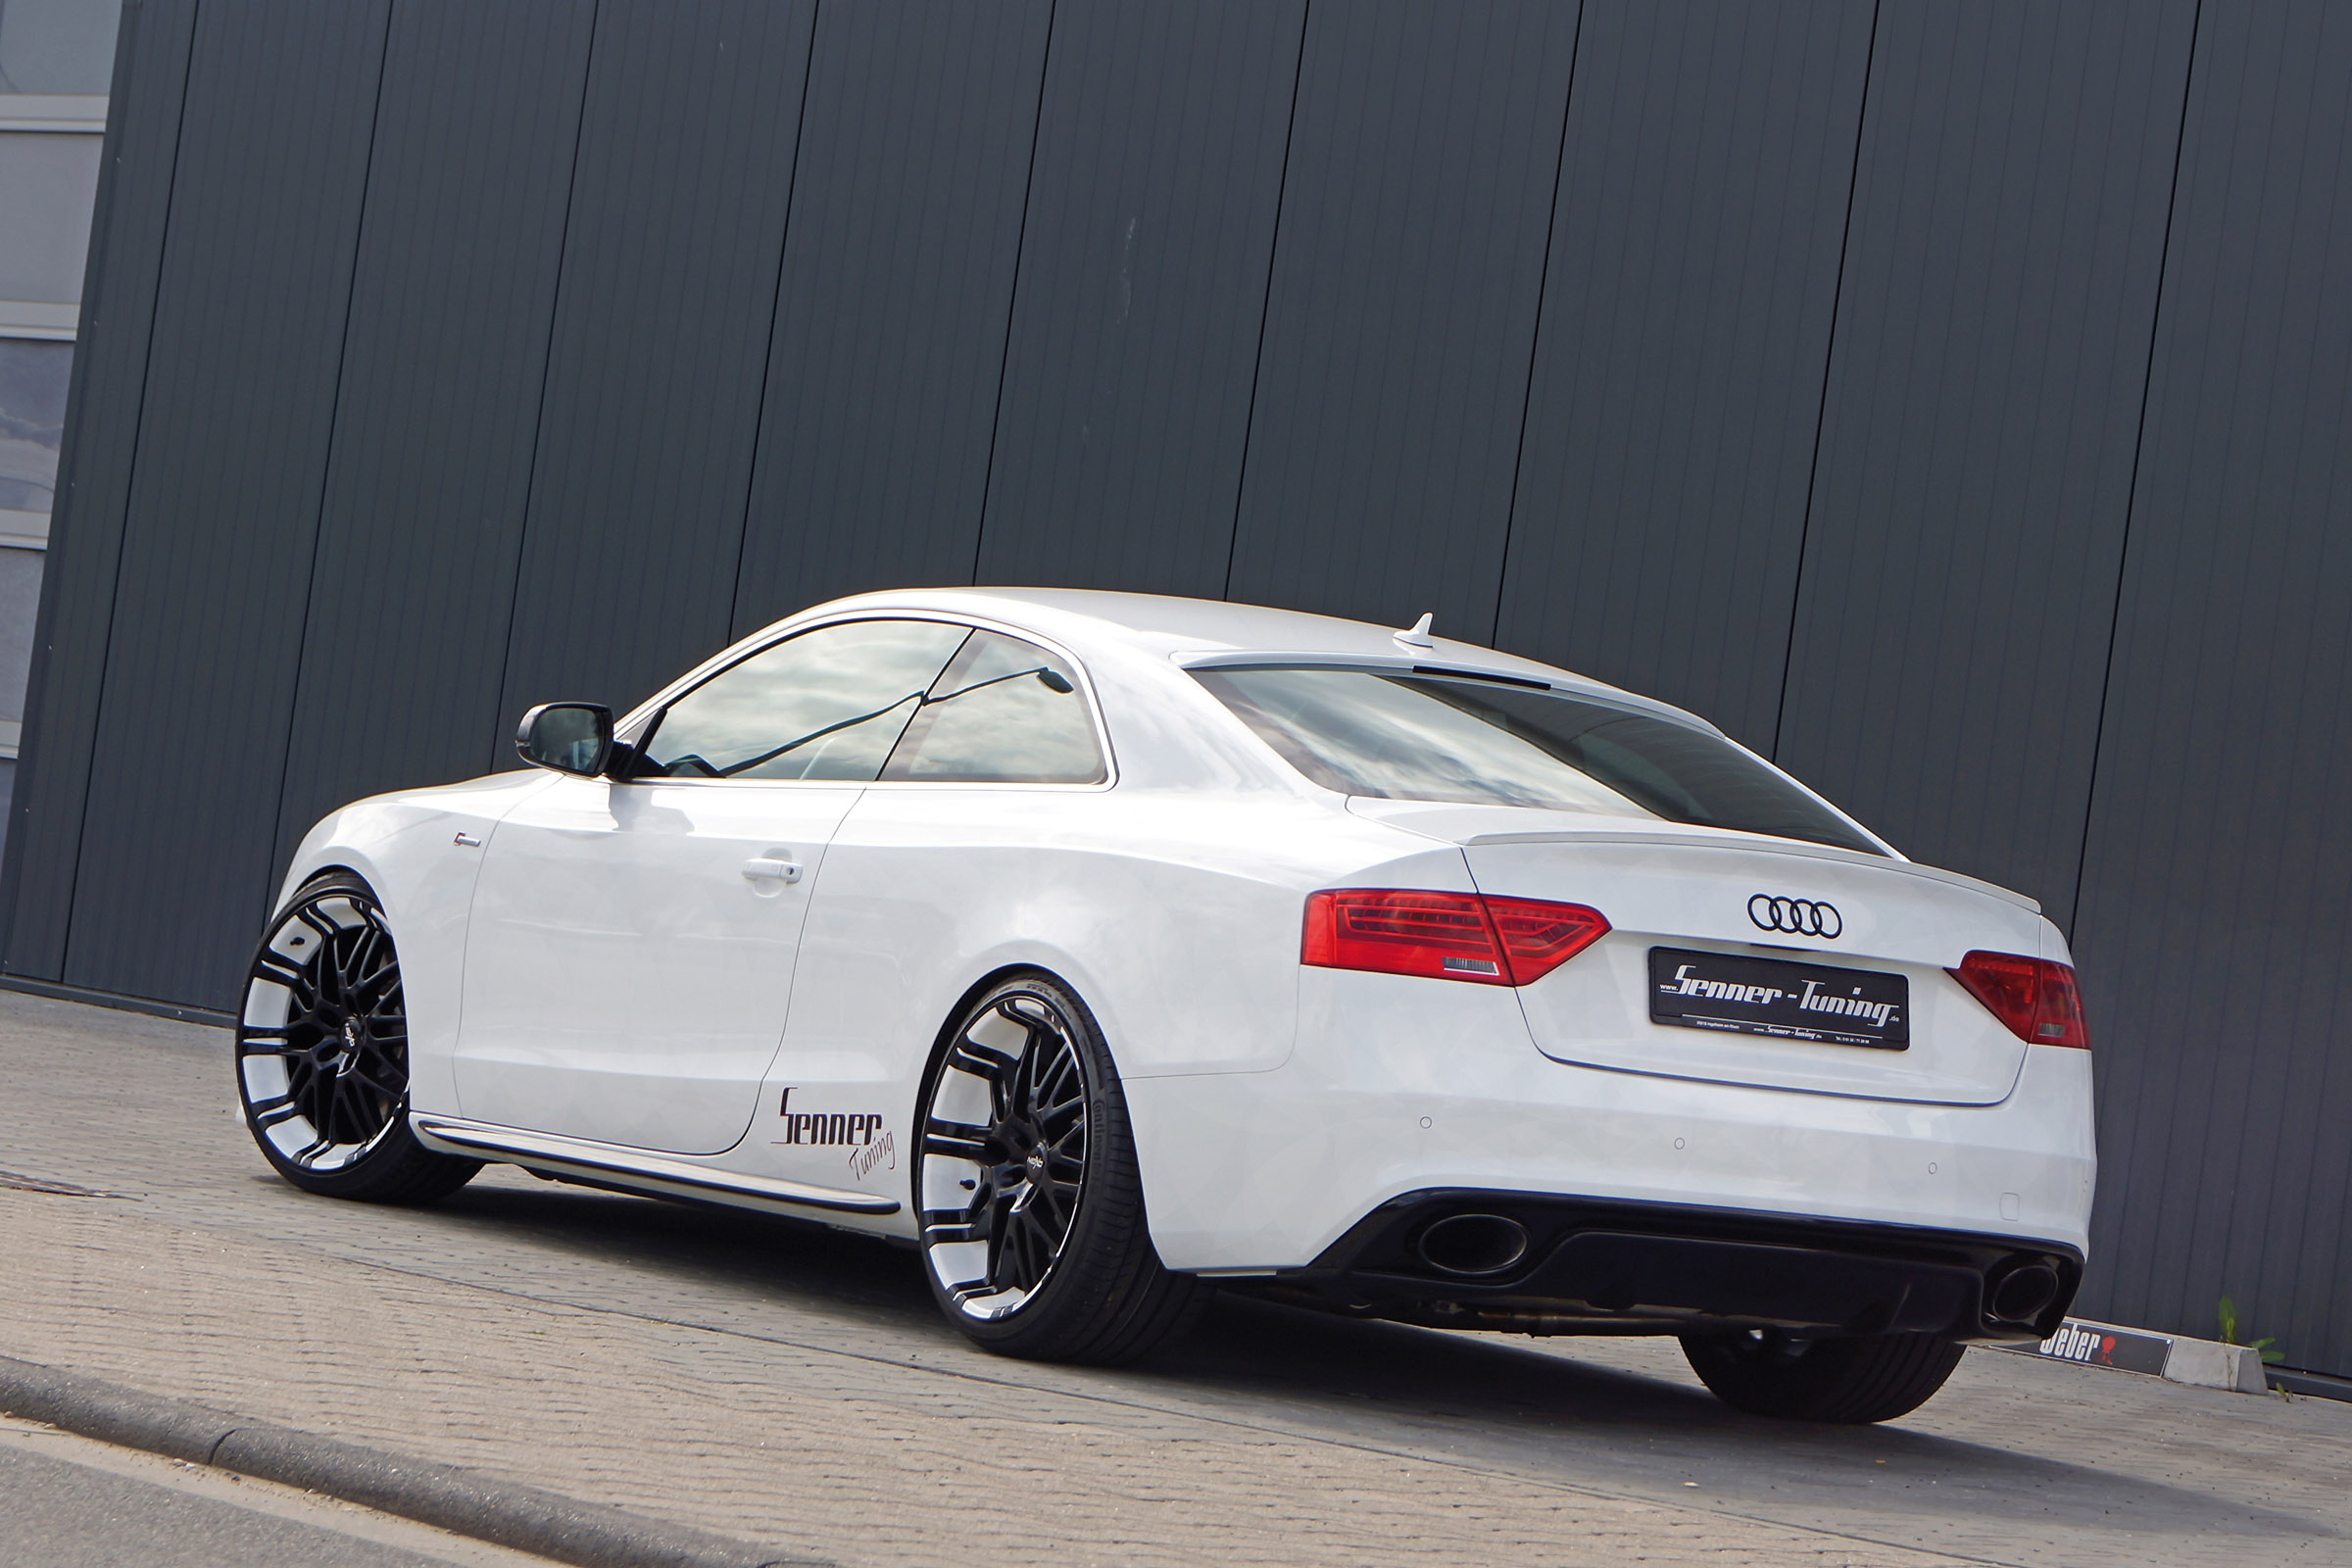 Senner Tuning An Oxigin Medley For The S5 Coupe And A5